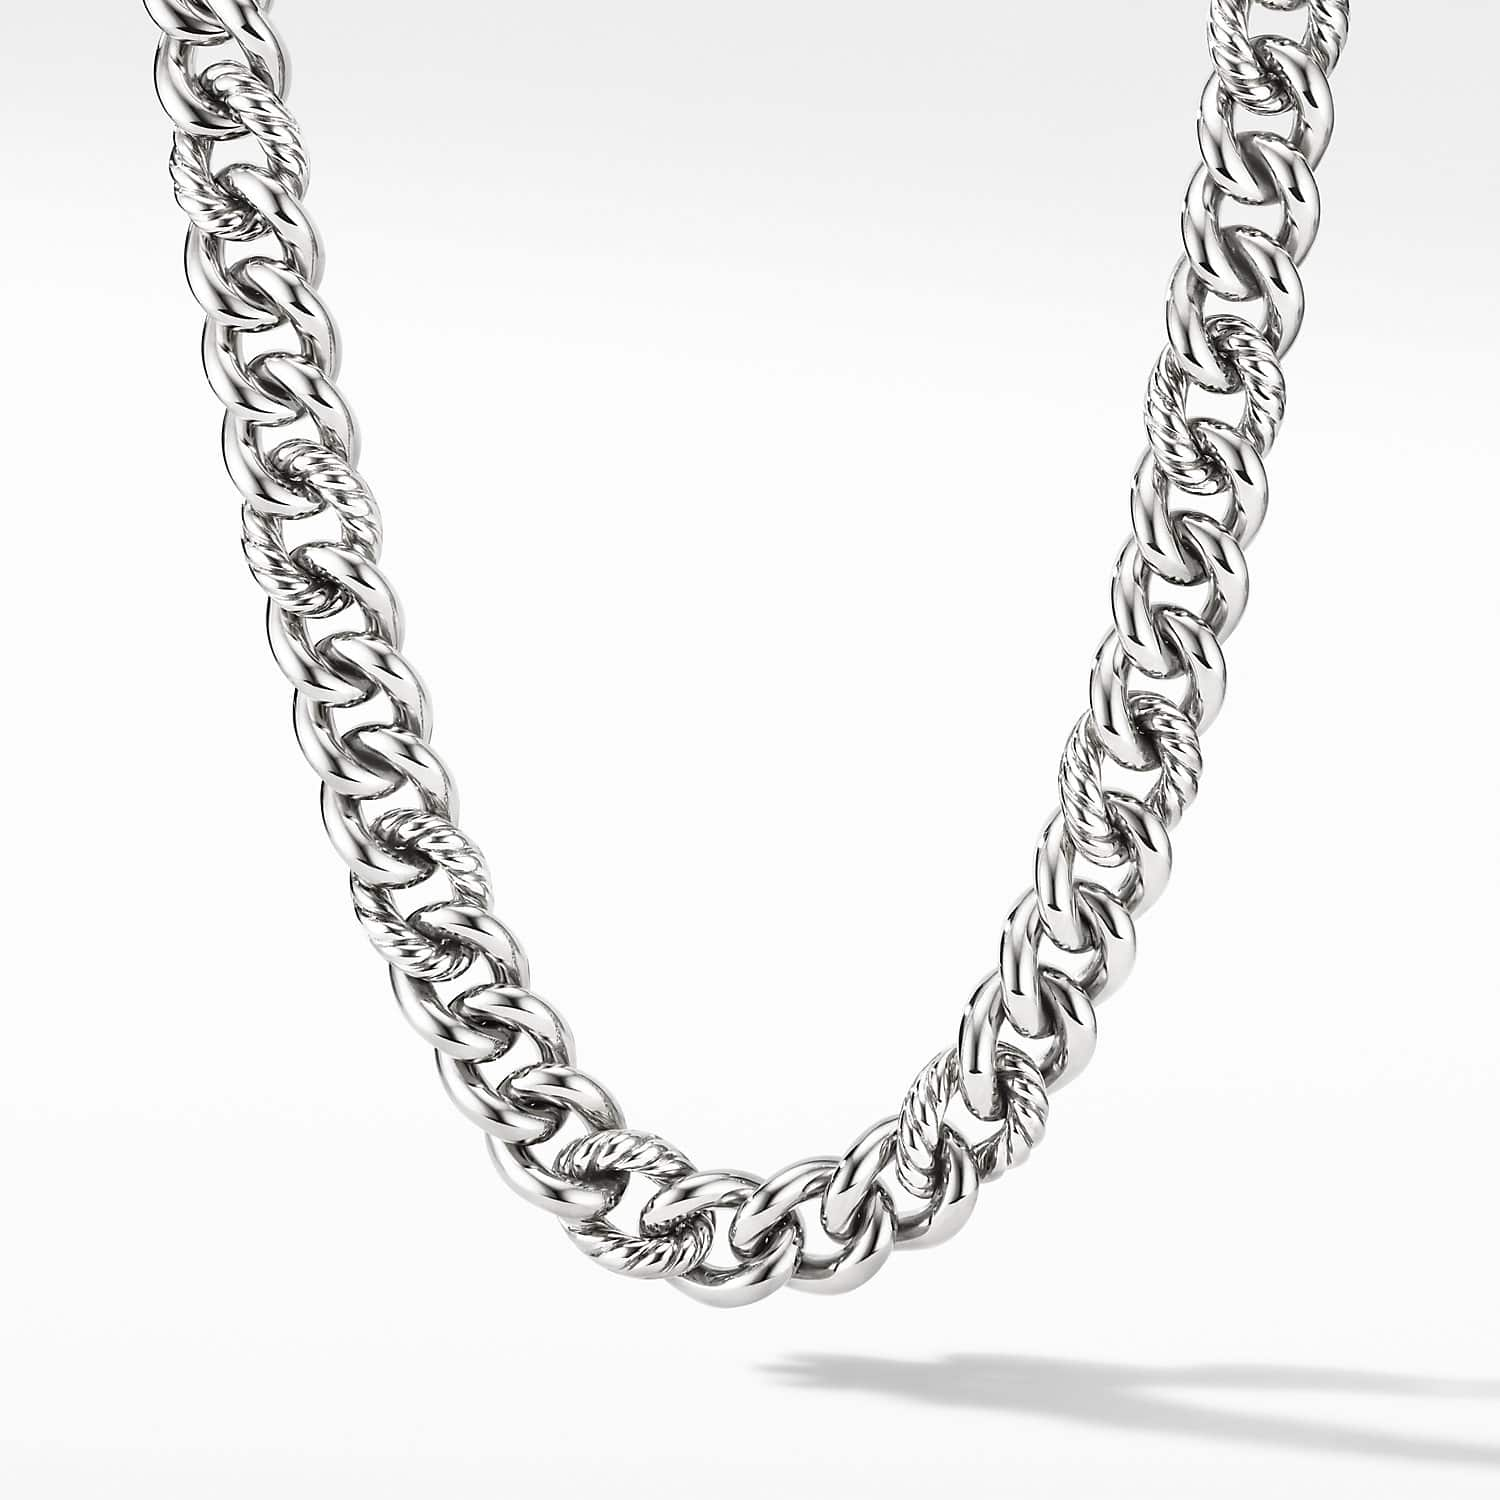 Curb Chain Necklace 13 5mm